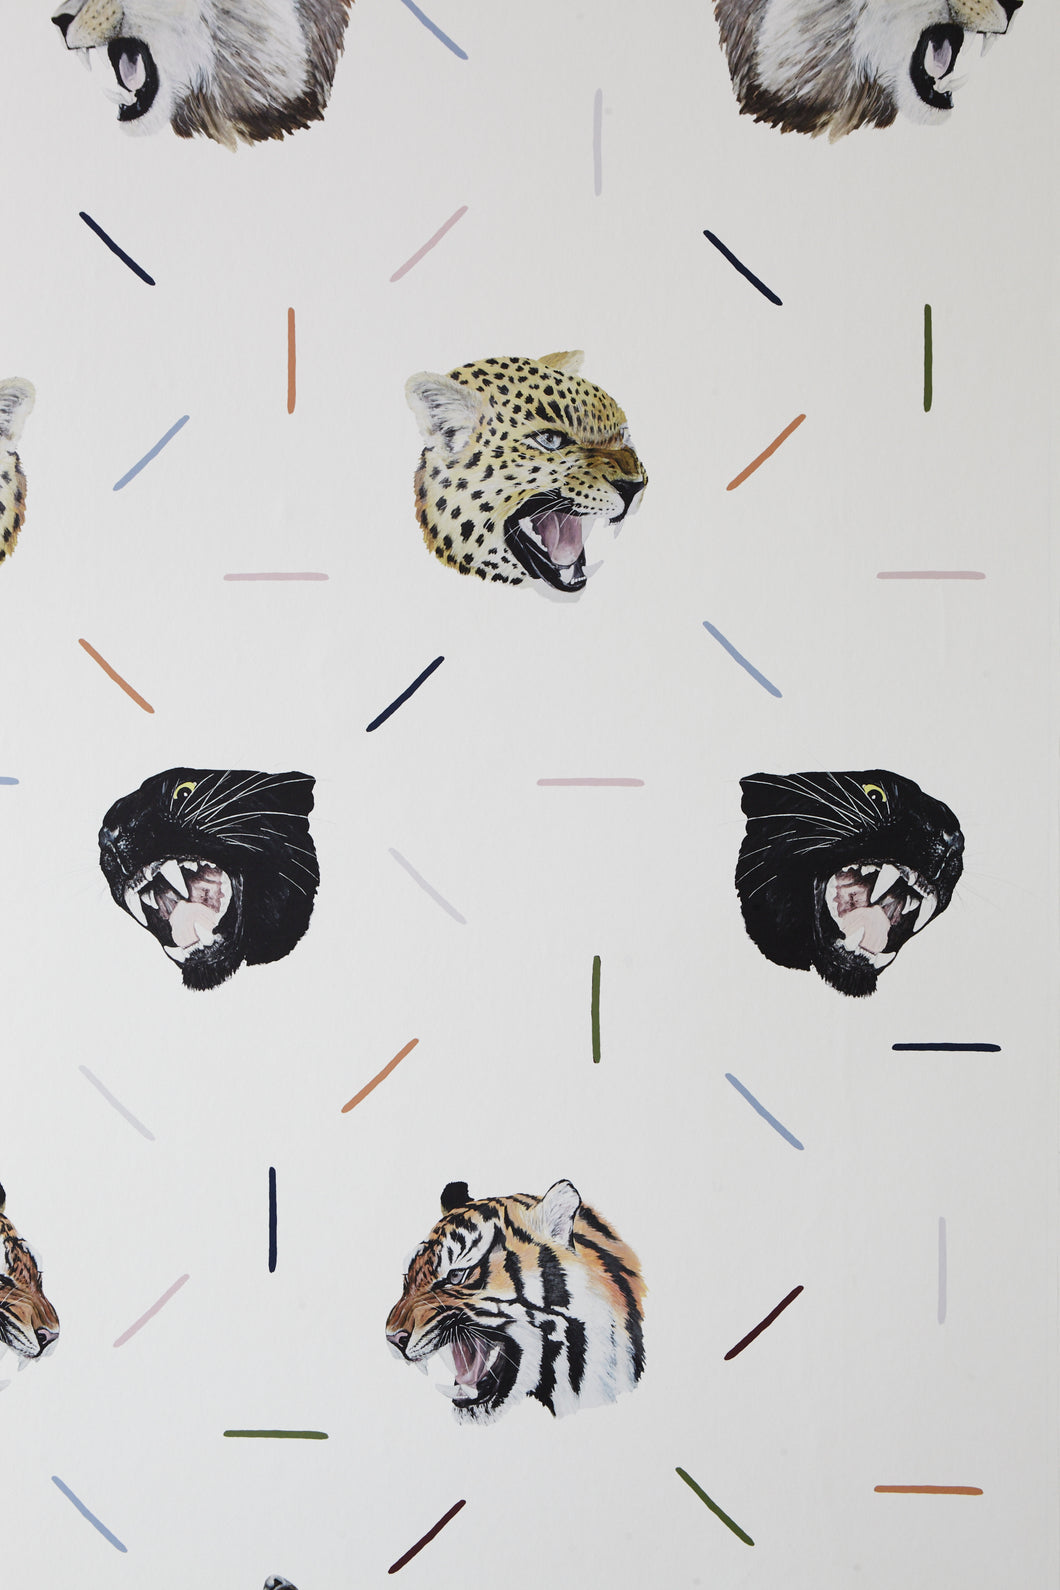 100% cotton animal fabric with tigers, jaguars and lions